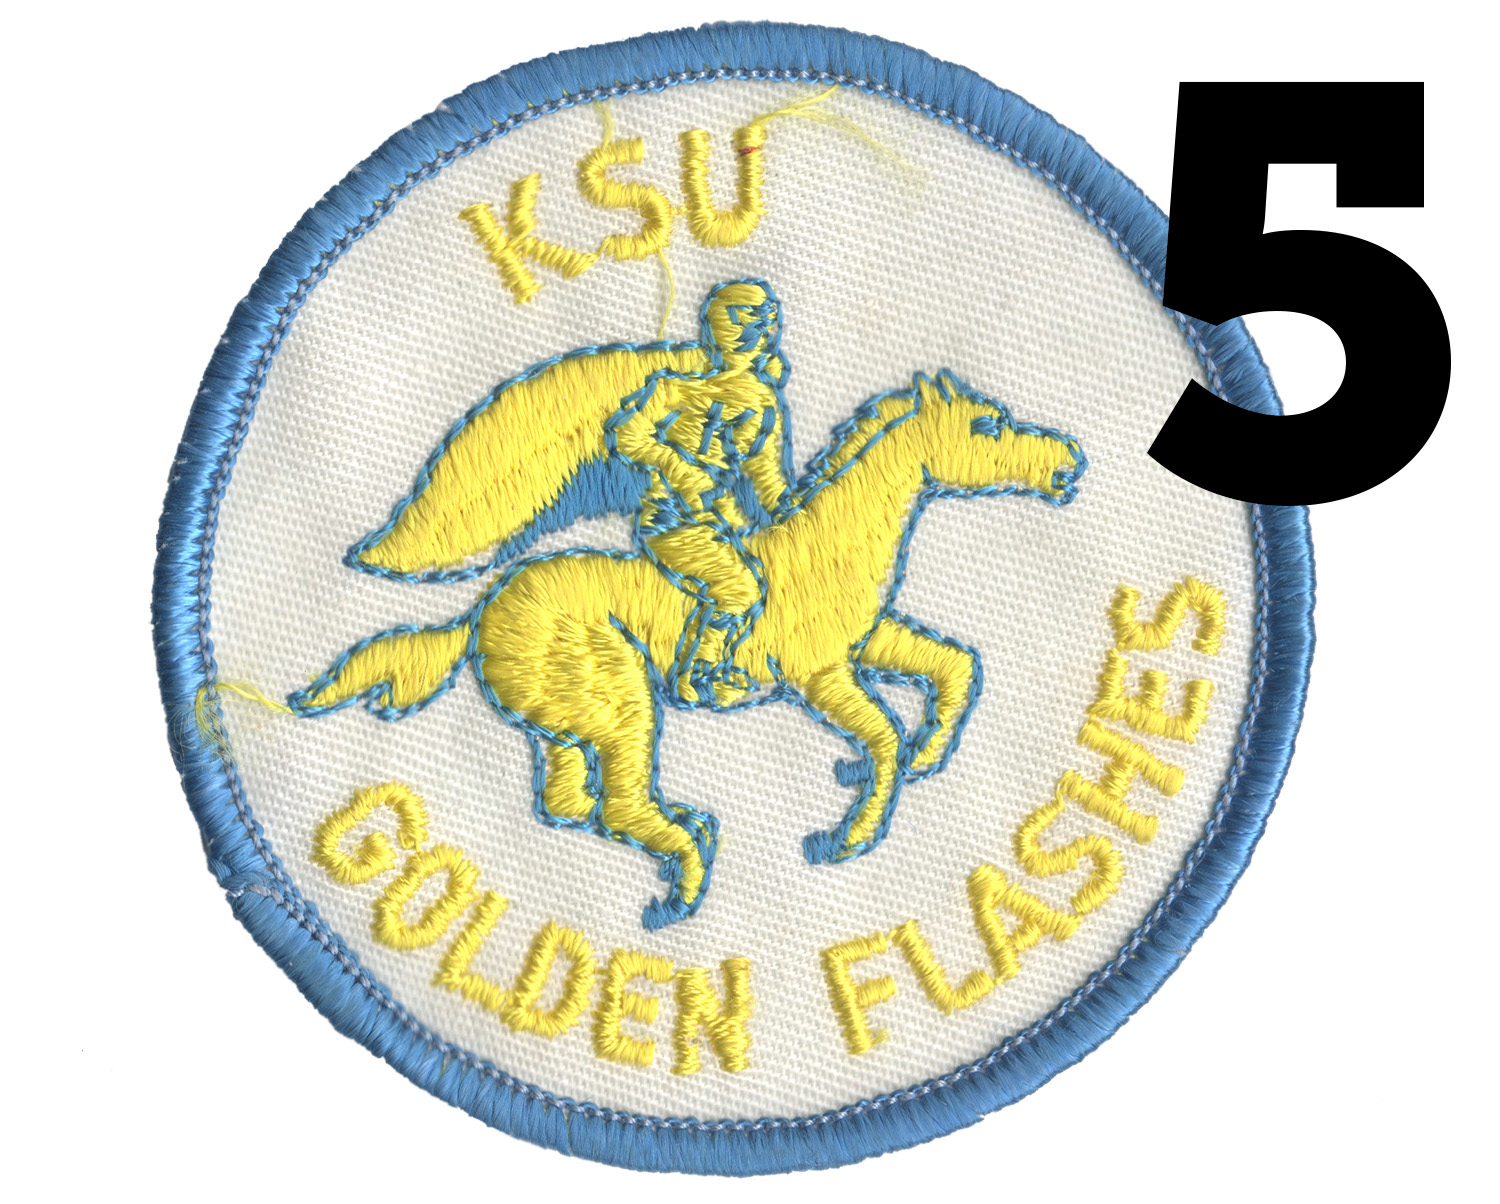 Patch featuring the western themed horse and rider